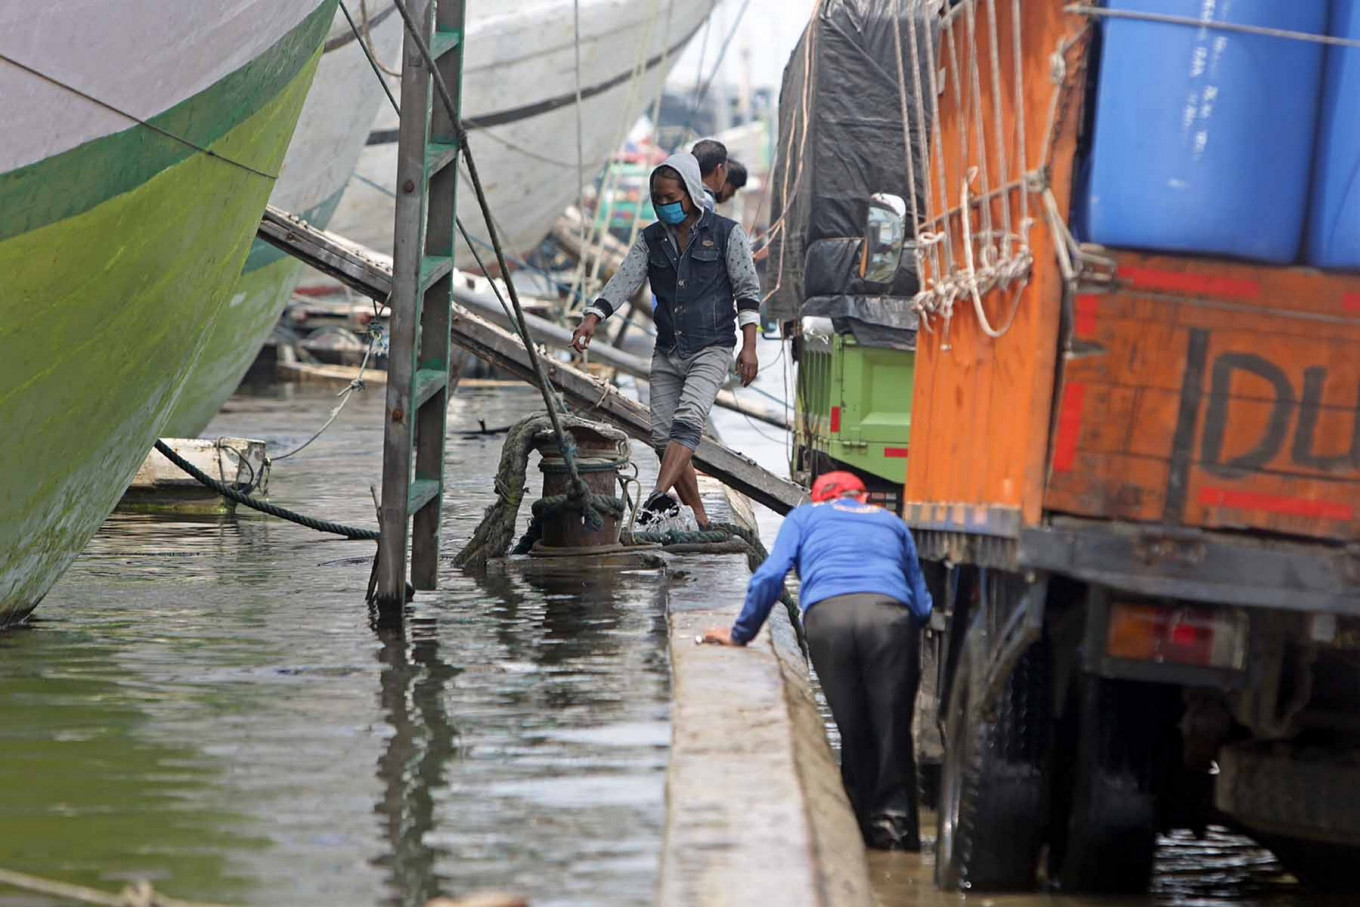 North Jakarta to provide rapid tests for people in flood shelters